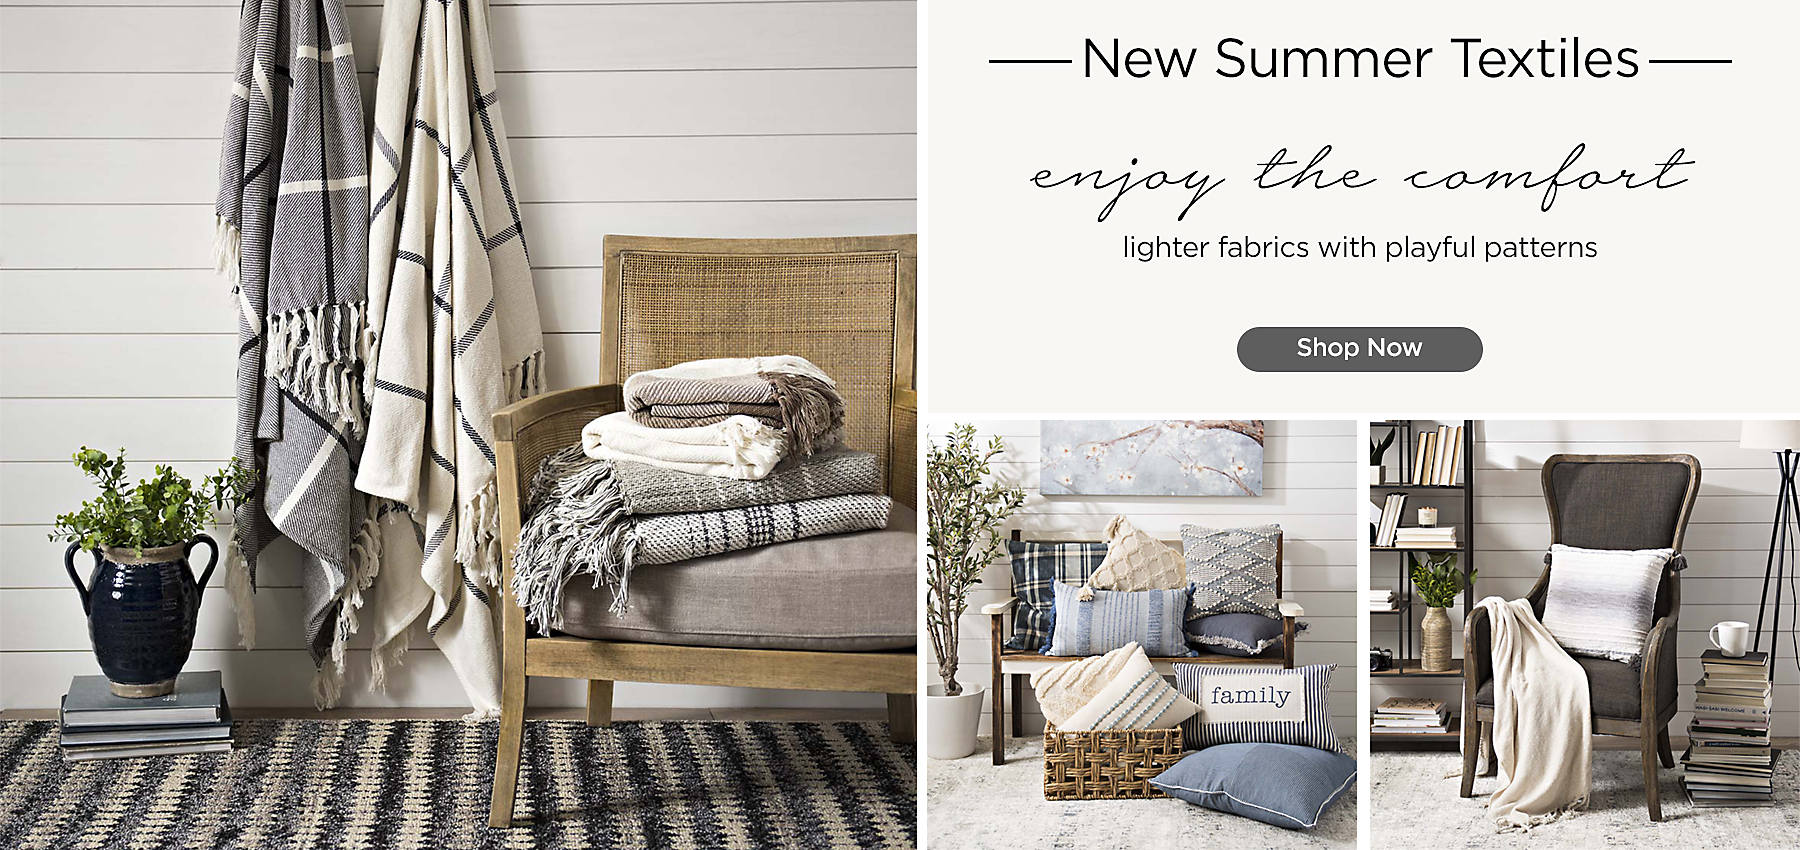 New Summer Textiles - Enjoy the comfort of lighter fabrics with playful patterns. Shop Now